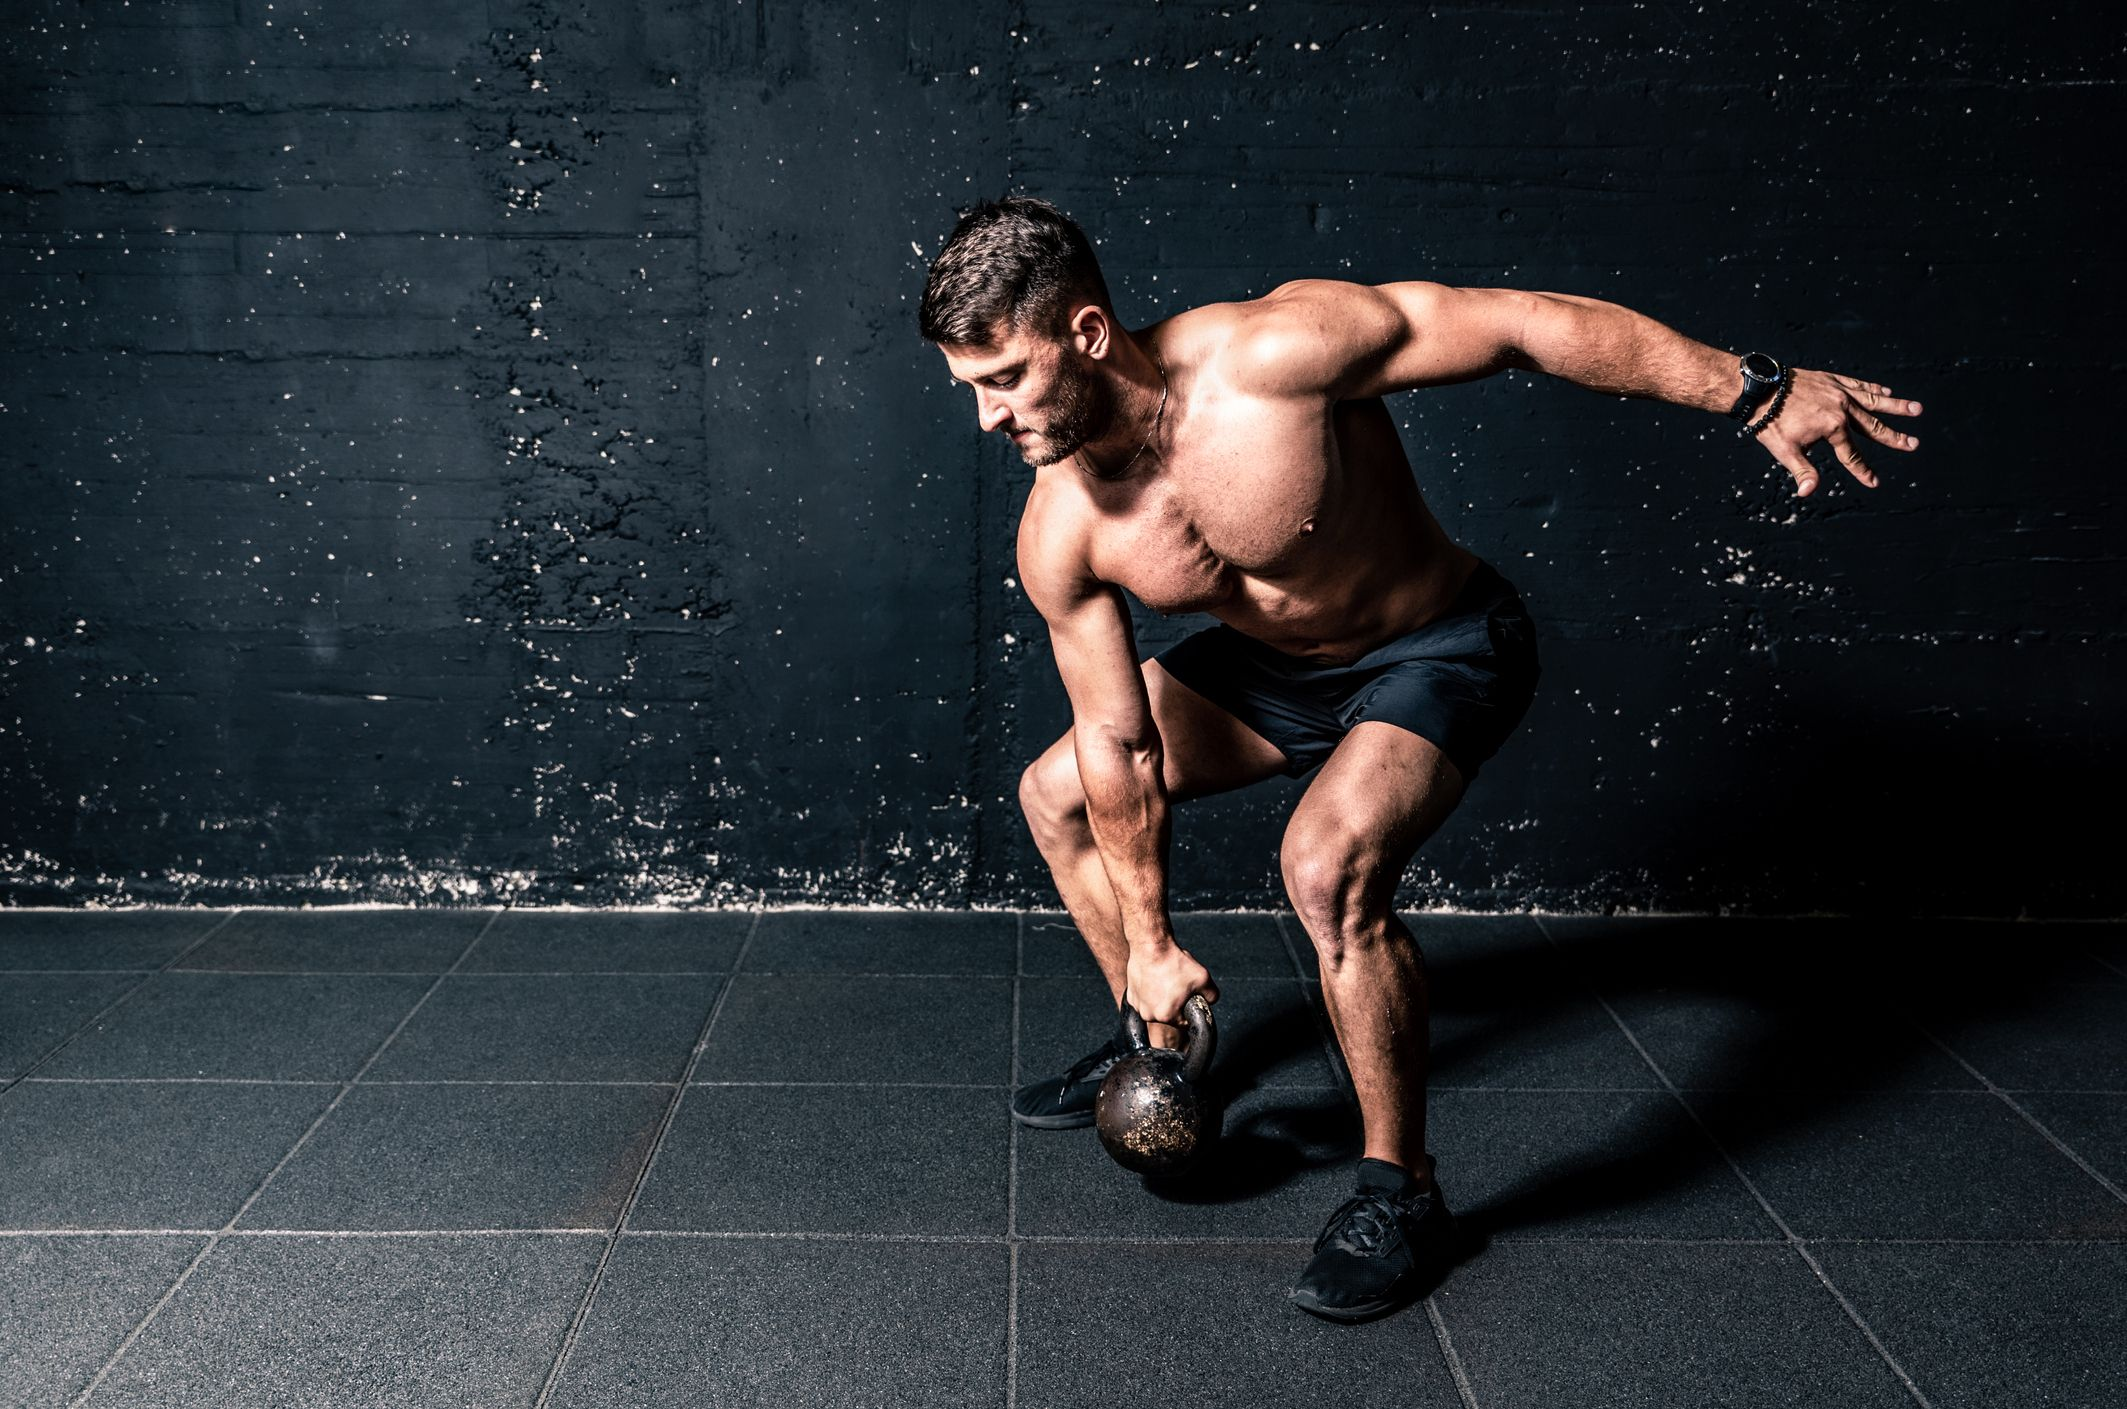 Want to Get Bigger and Stronger? Lift By 'The Rule of 5'